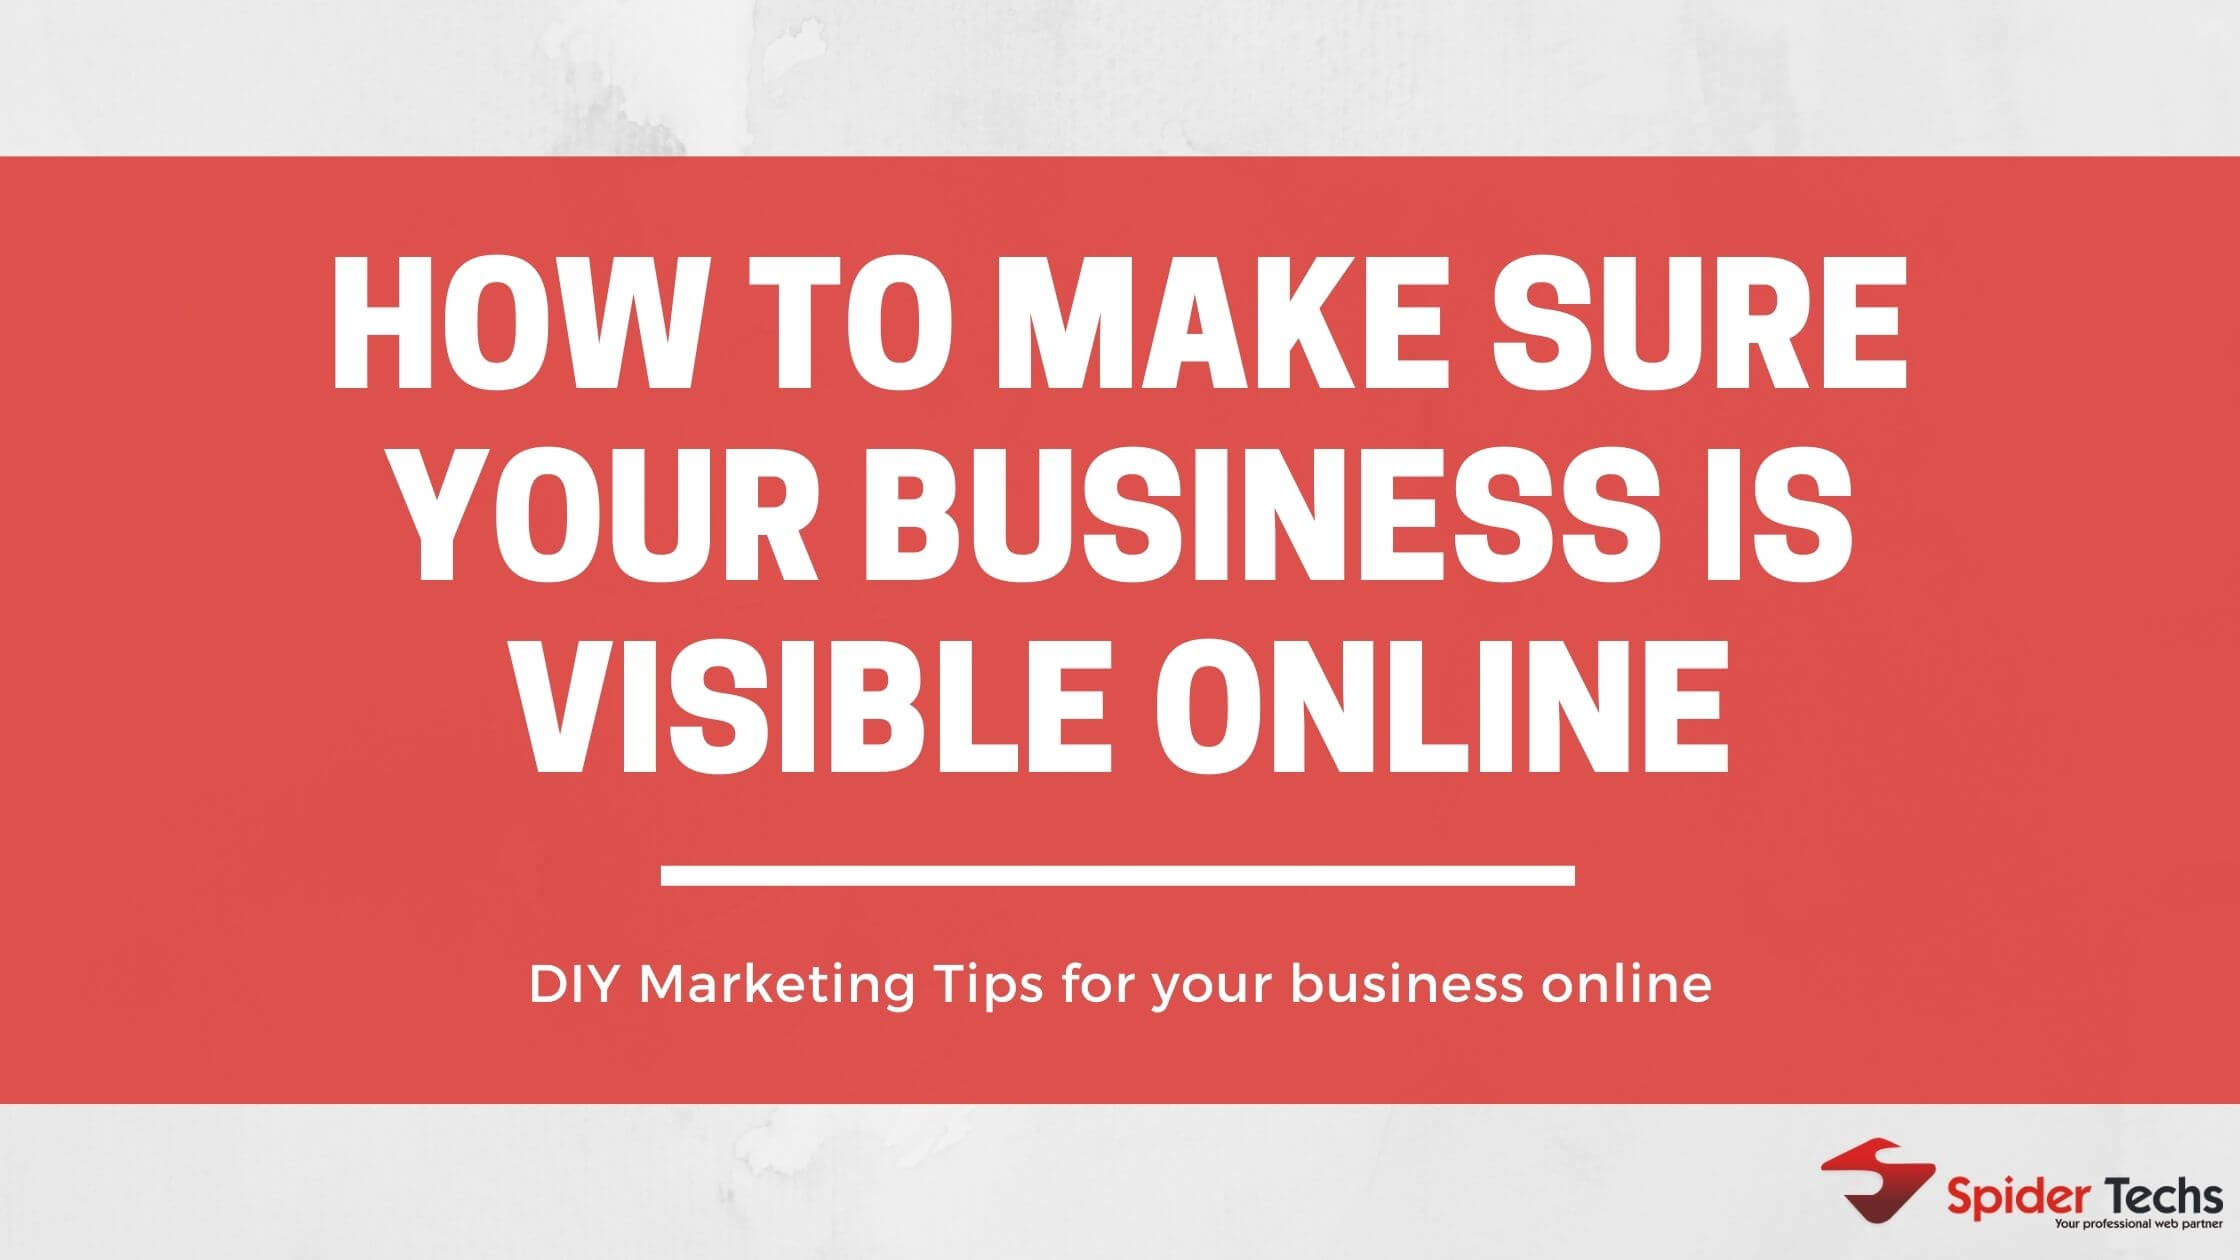 5 Tips to make sure your business is visible online